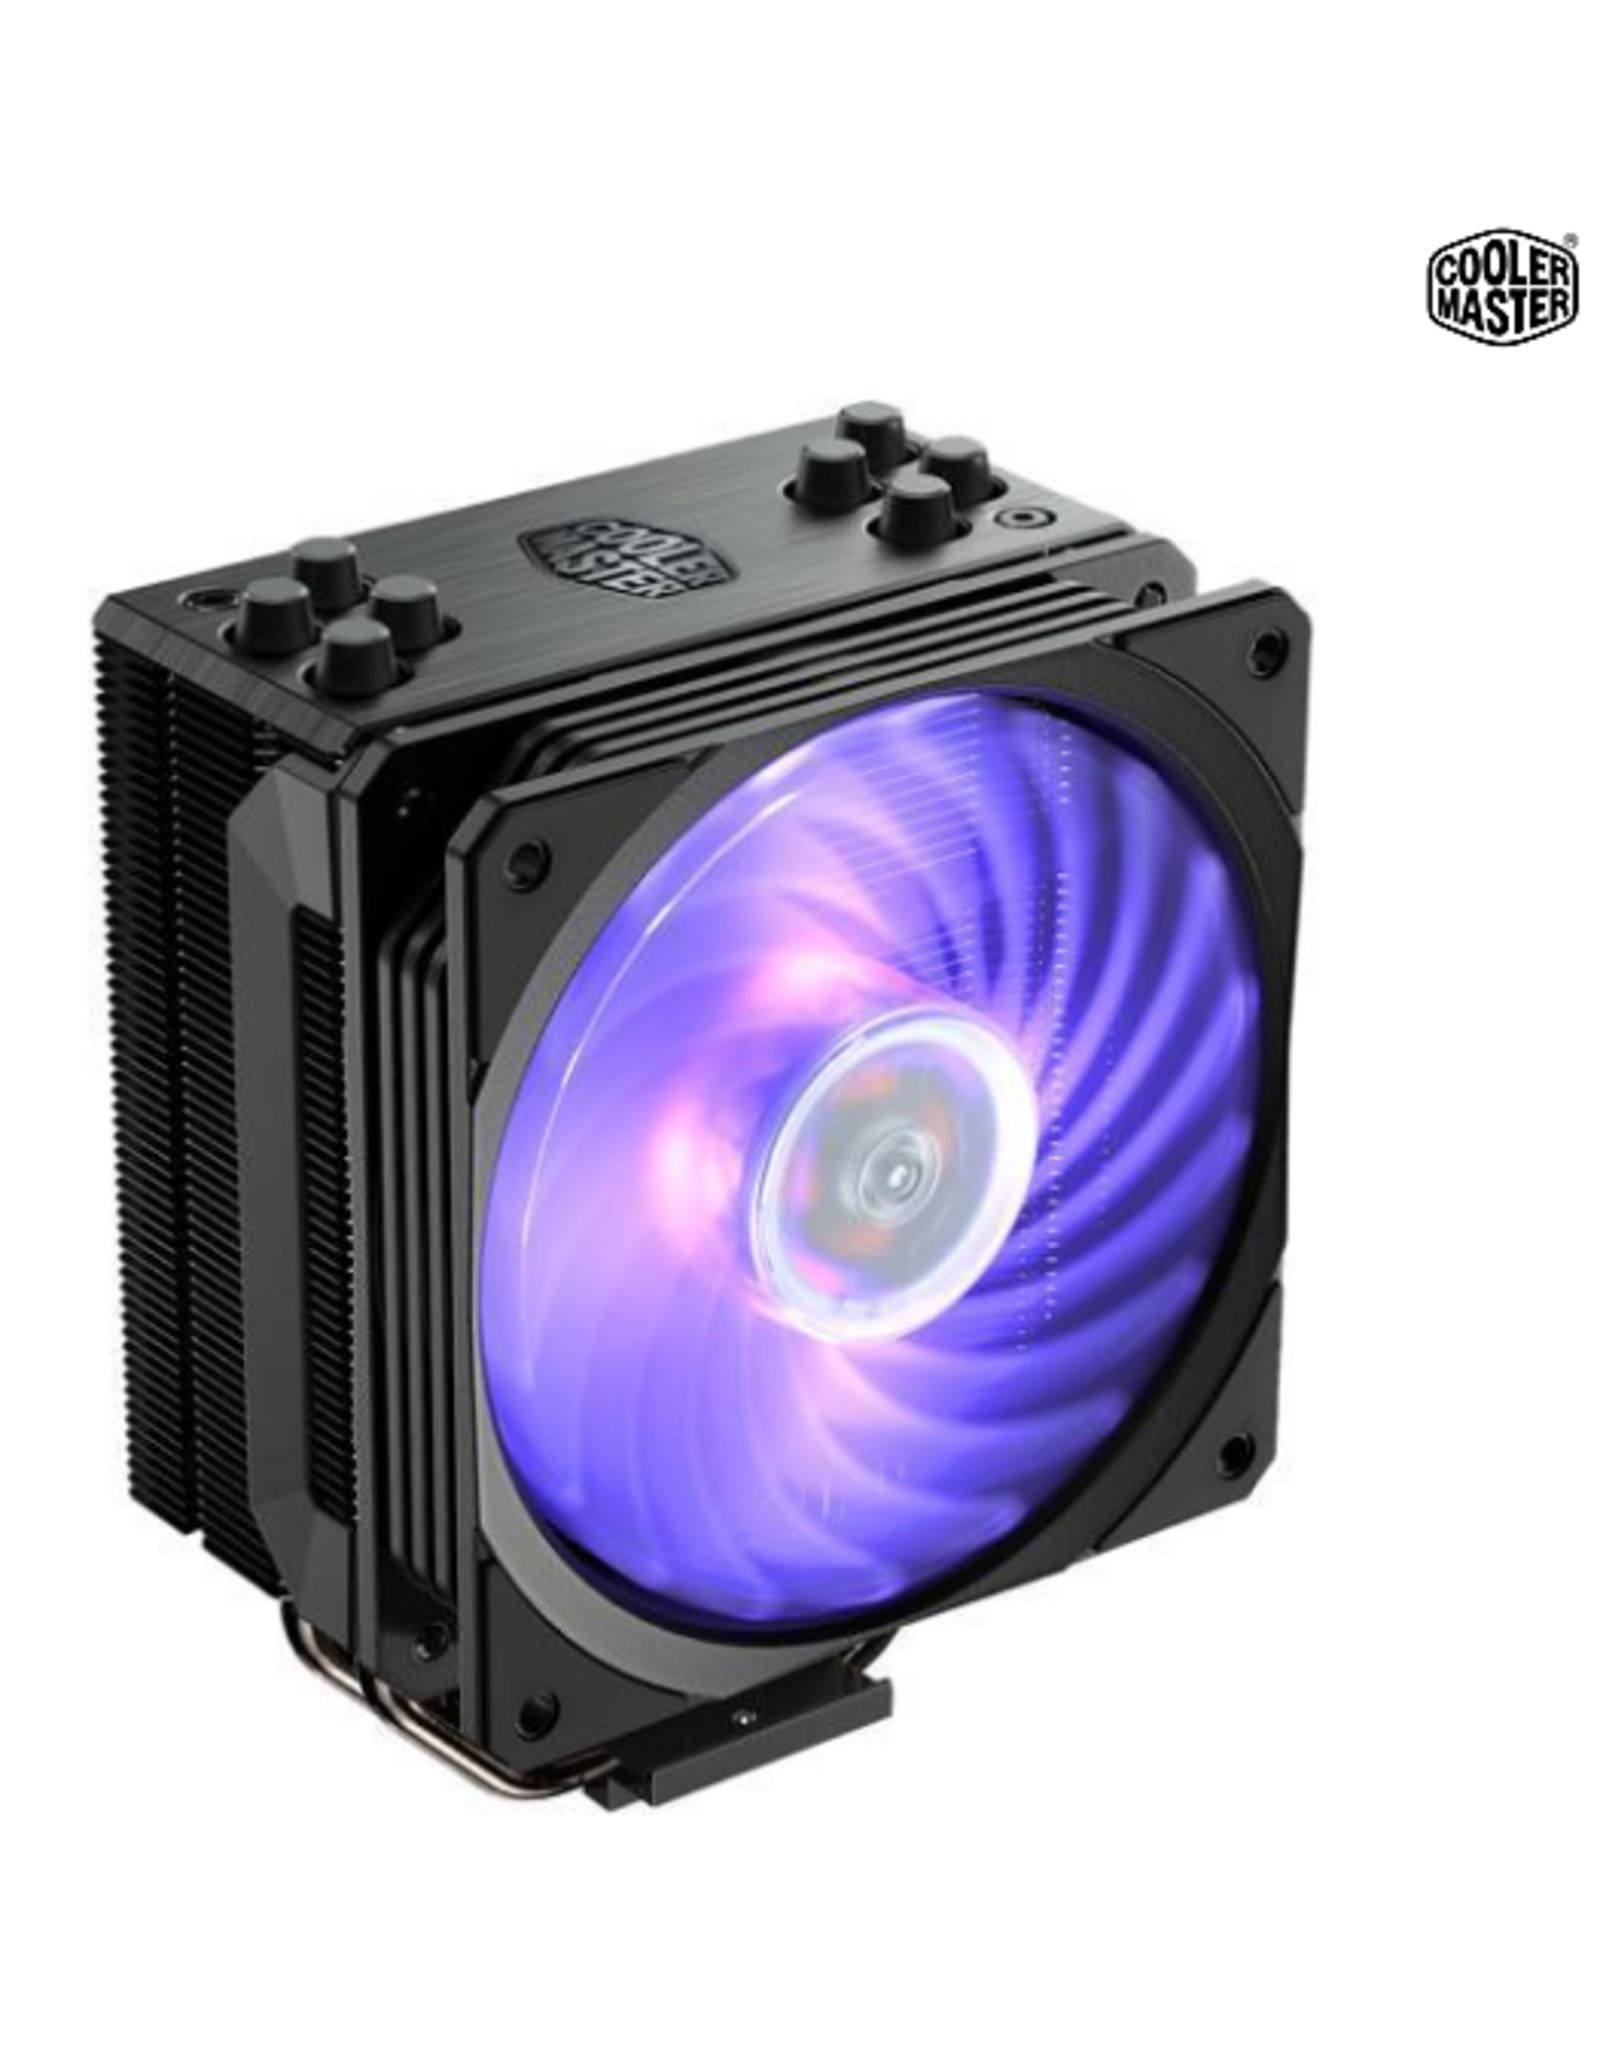 CoolerMaster Cooler Master Hyper 212 RGB Black Edition CPU Air Cooler, 4 Direct Contact Heatpipes, 120mm RGB Fan